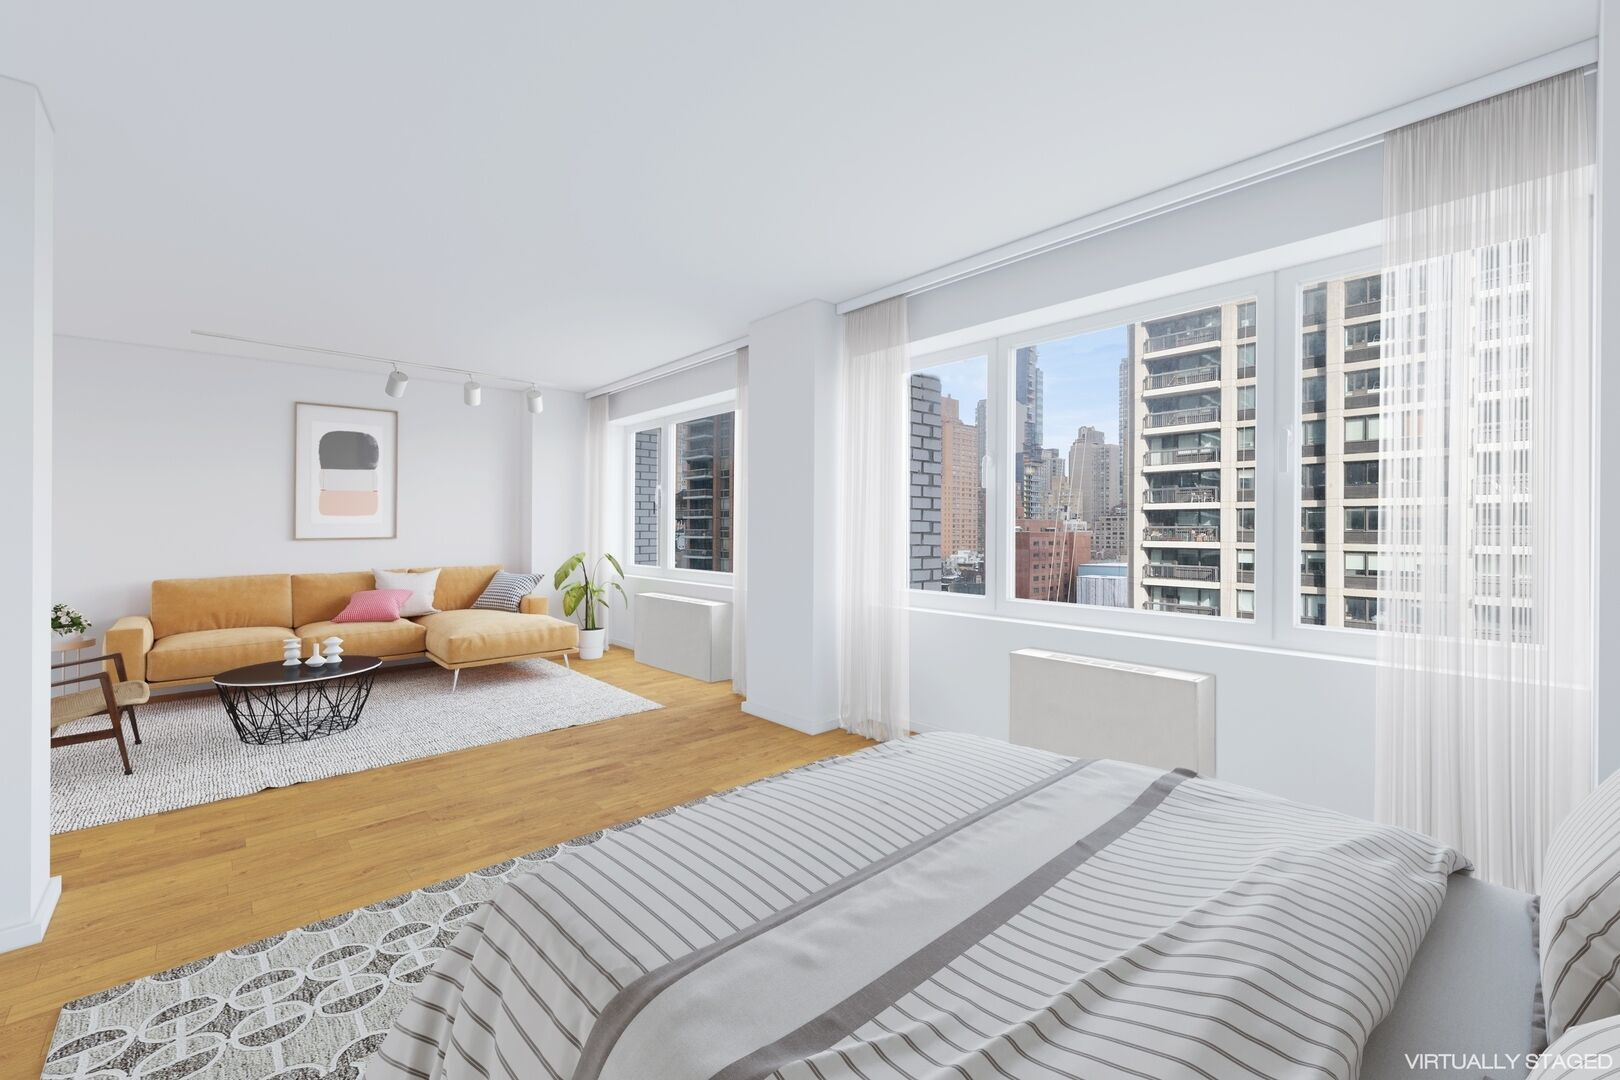 Apartment for sale at 303 East 57th Street, Apt 9-H